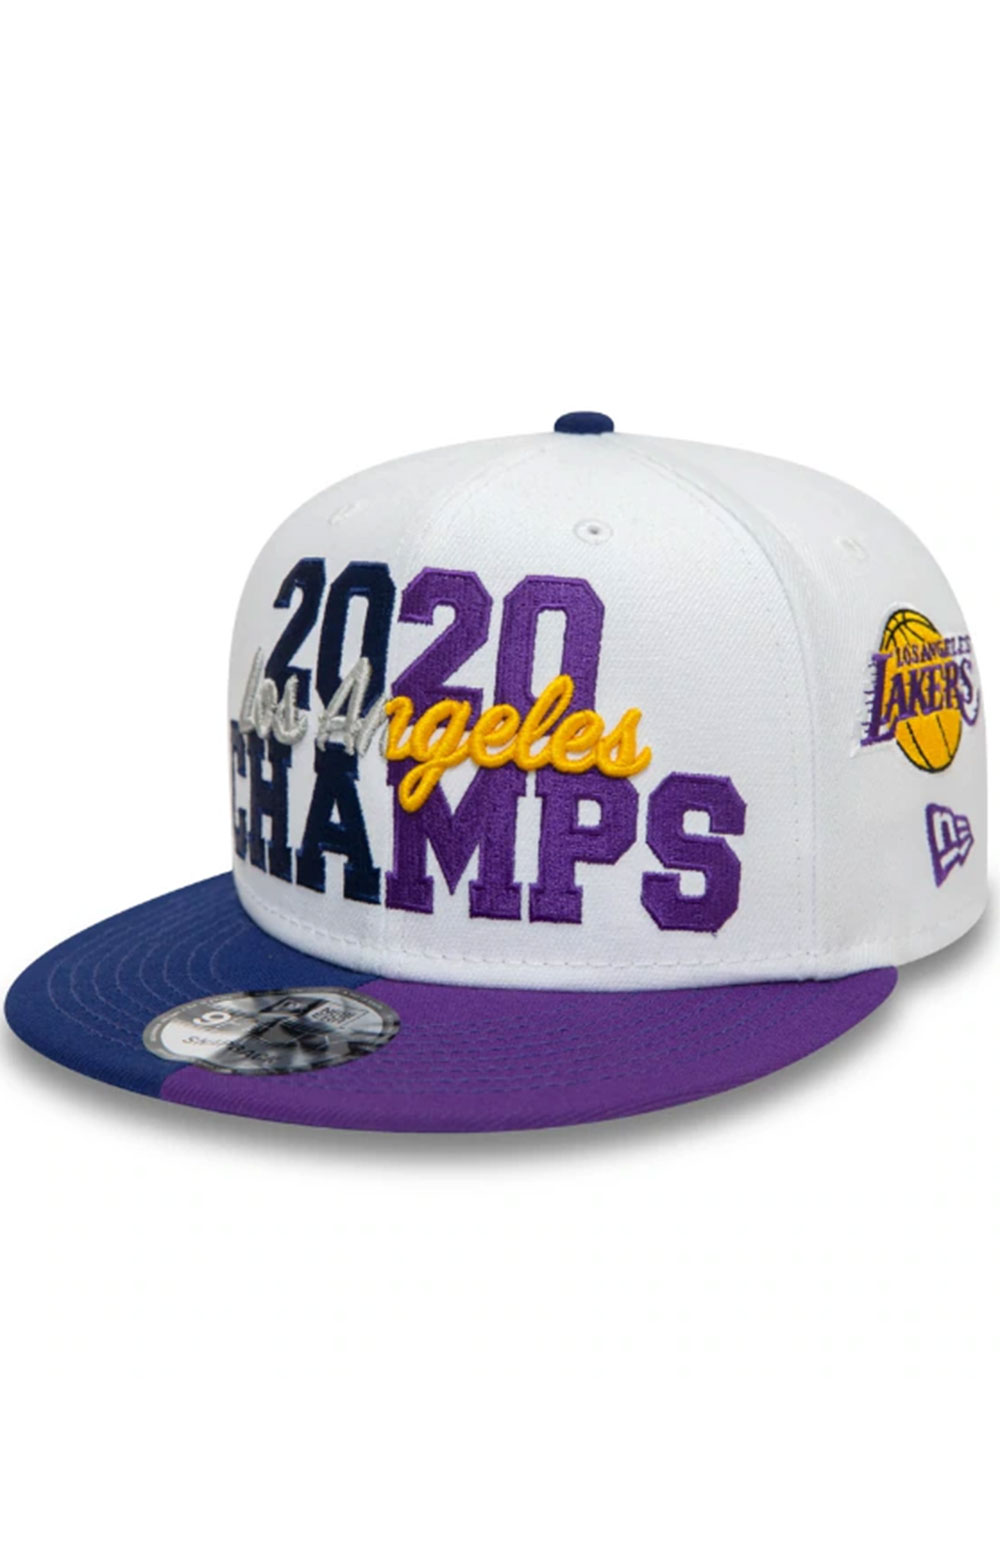 Los Angeles Co Champs 2020 9FIFTY Snap-Back - White  5